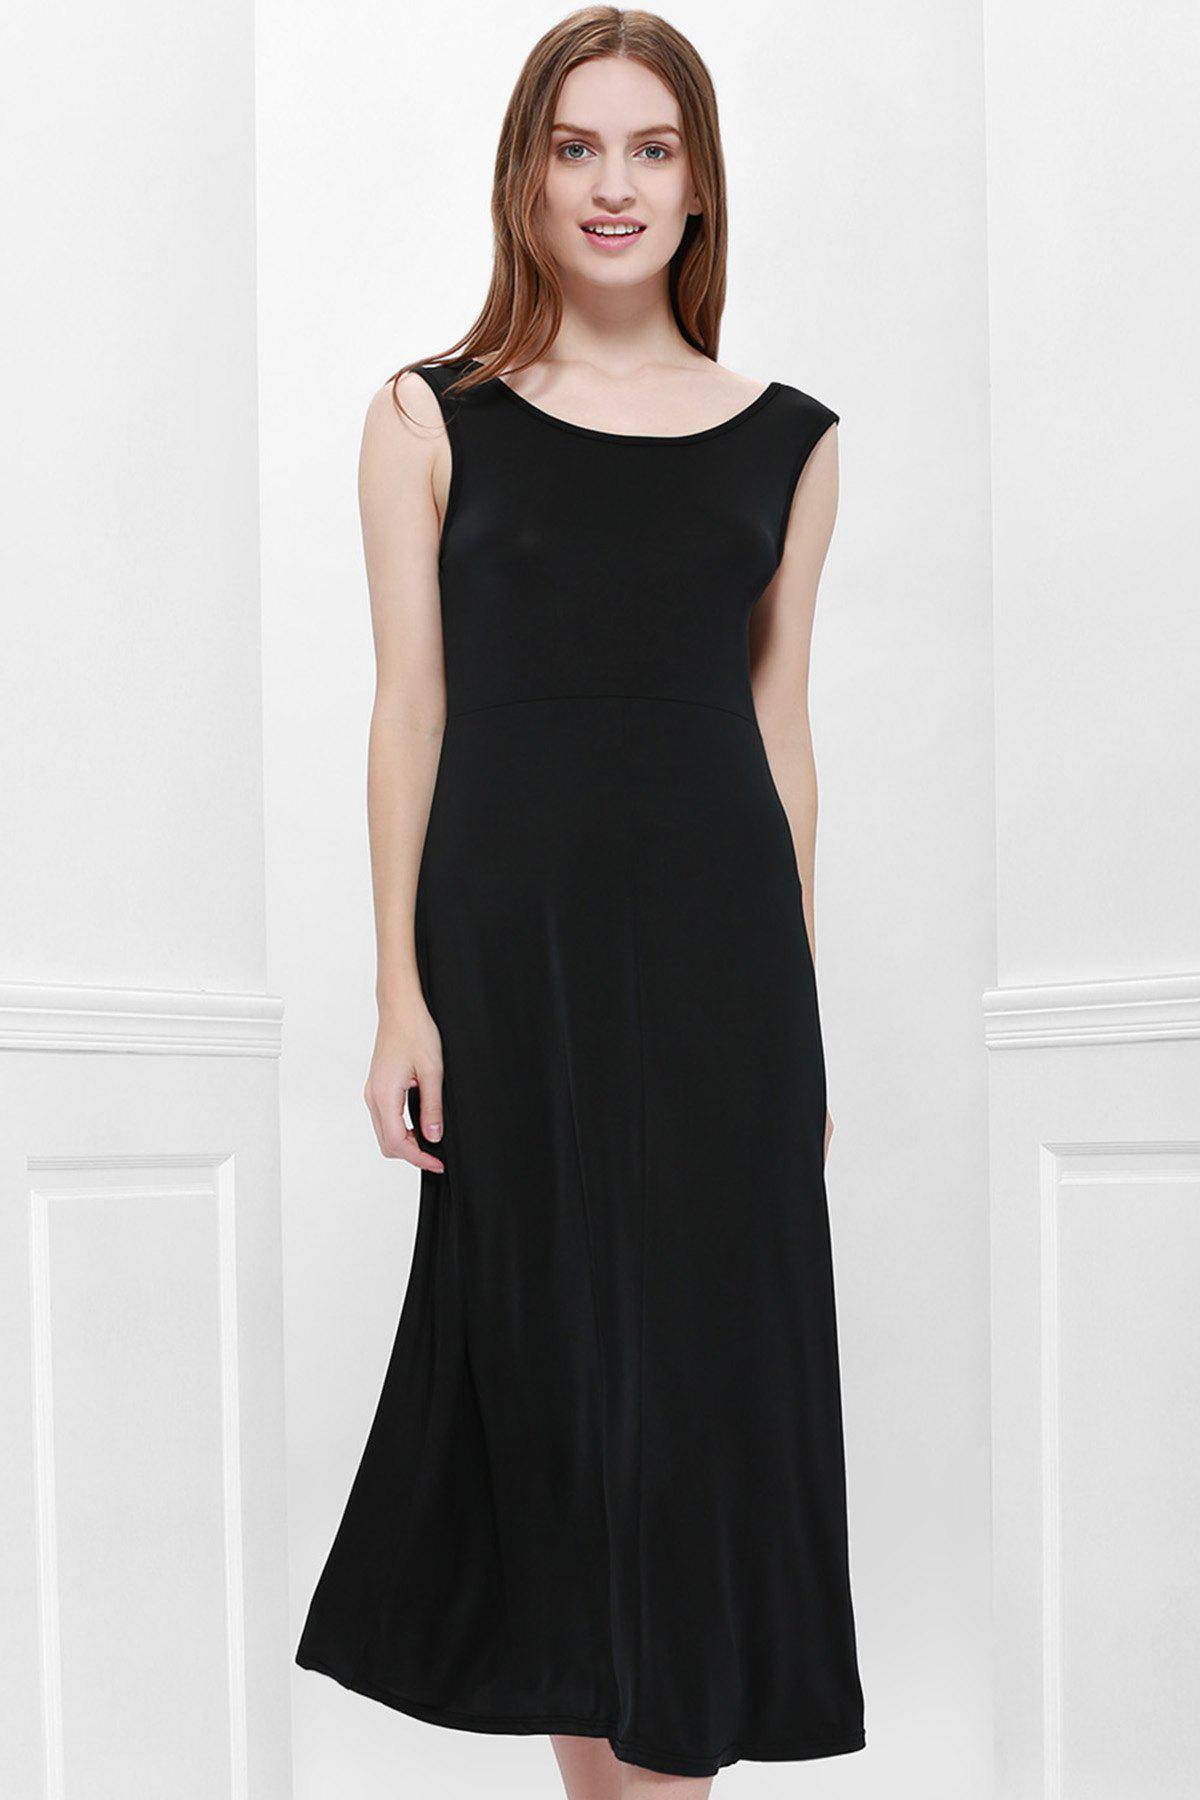 87e5f27f80 Online Bohemian Style Delicate Scoop Neck Solid Color V-Shape Backless  Black Sleeveless Maxi Dress